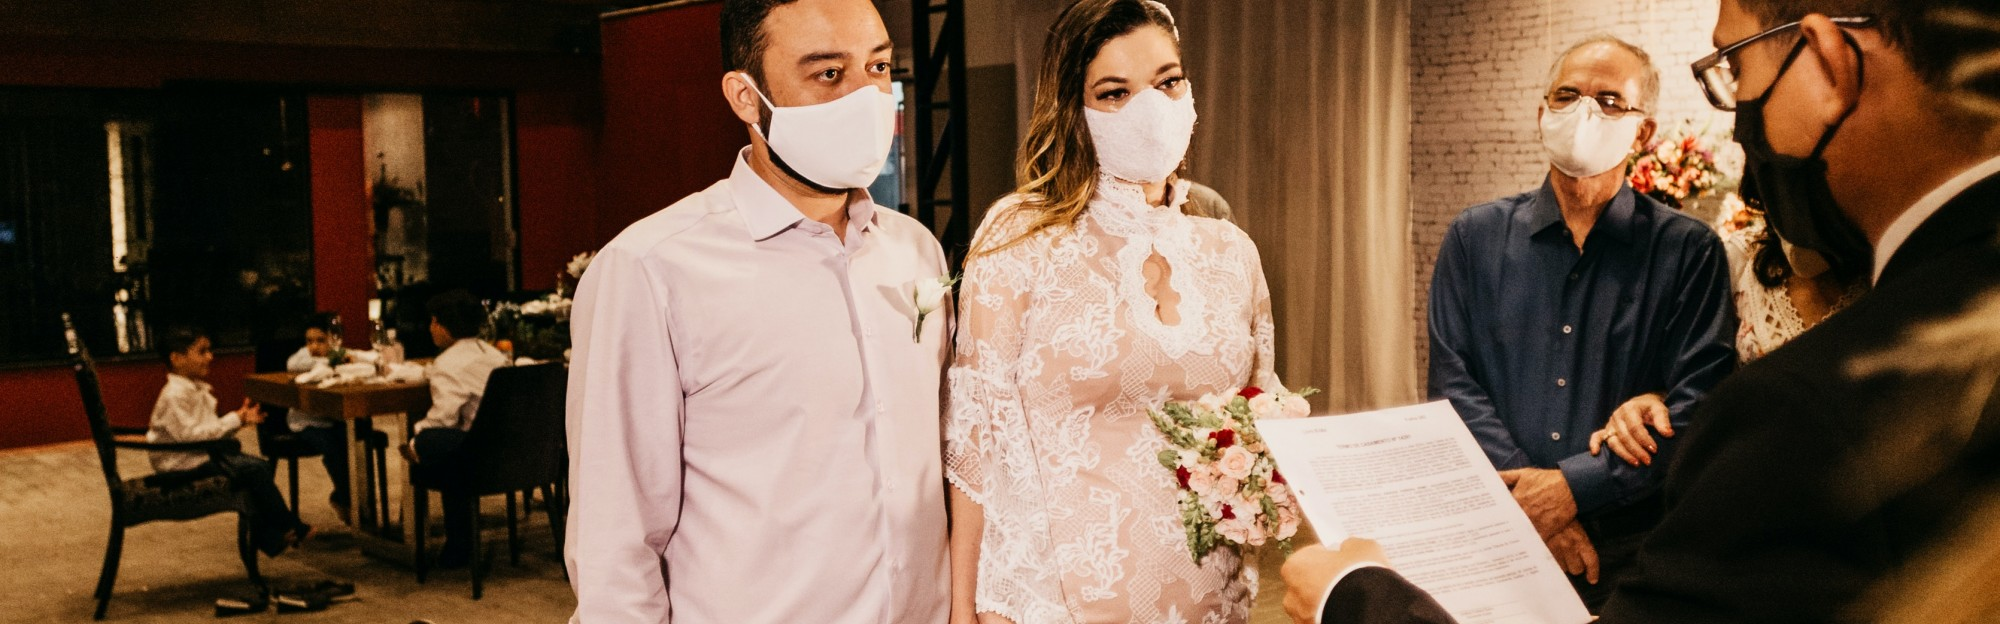 how-to-plan-a-happy-wedding-amidst-the-pandemic